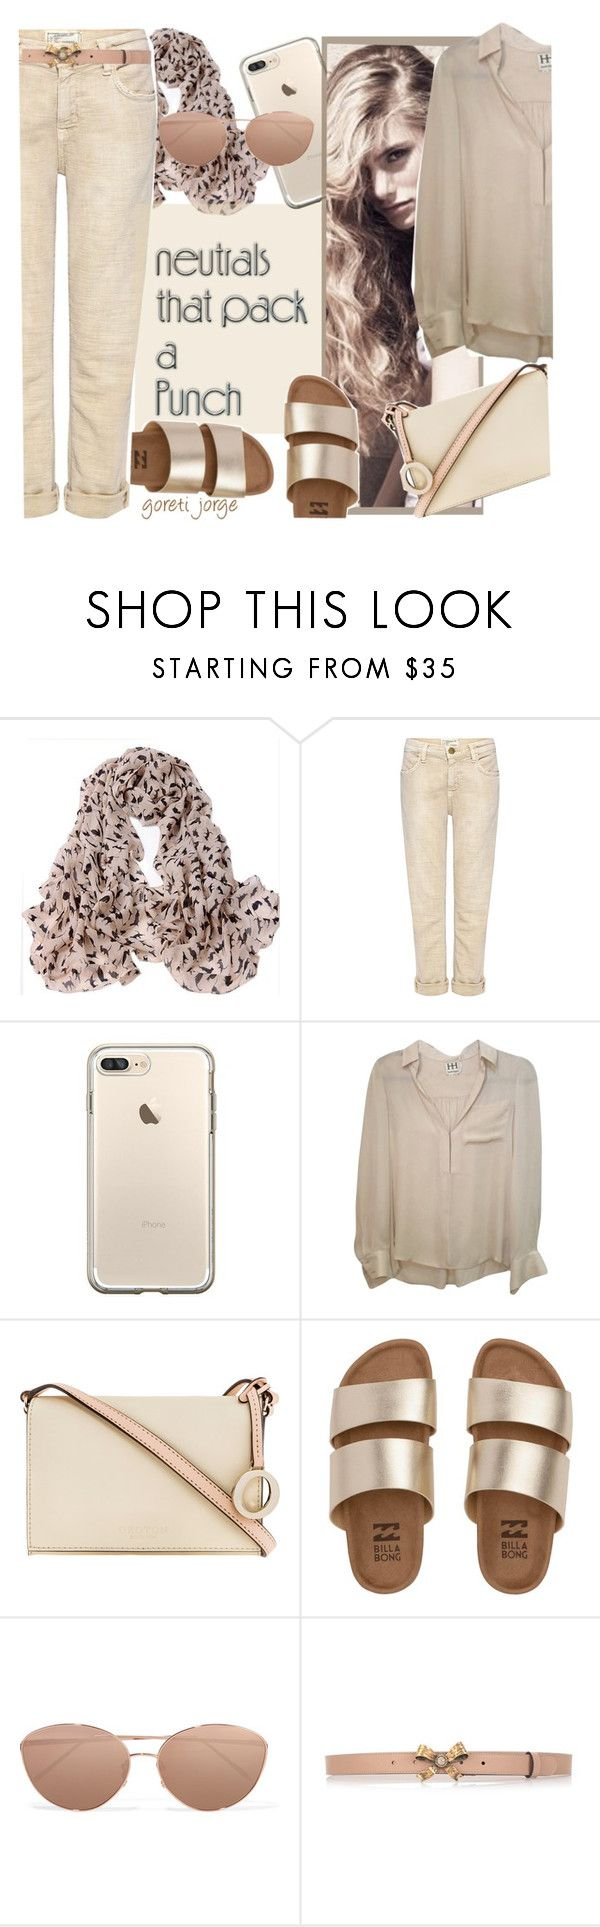 """""""Nude"""" by goreti ❤ liked on Polyvore featuring Current/Elliott, Haute Hippie, Oroton, Billabong, Linda Farrow, Gucci and neutrals"""